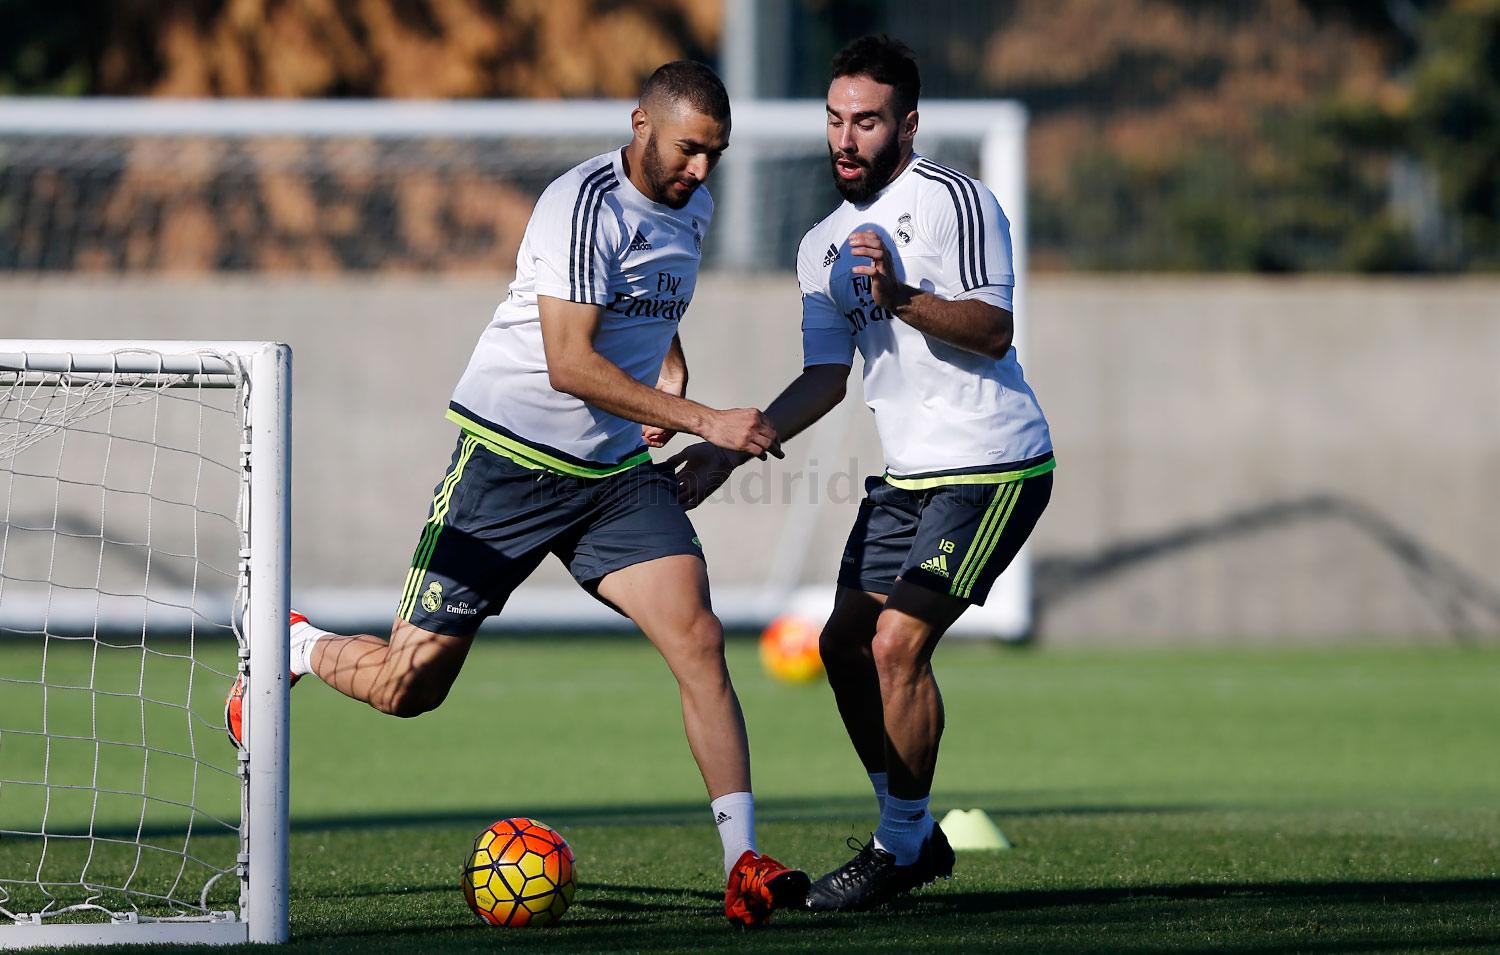 Real Madrid - Entrenamiento del Real Madrid - 13-11-2015